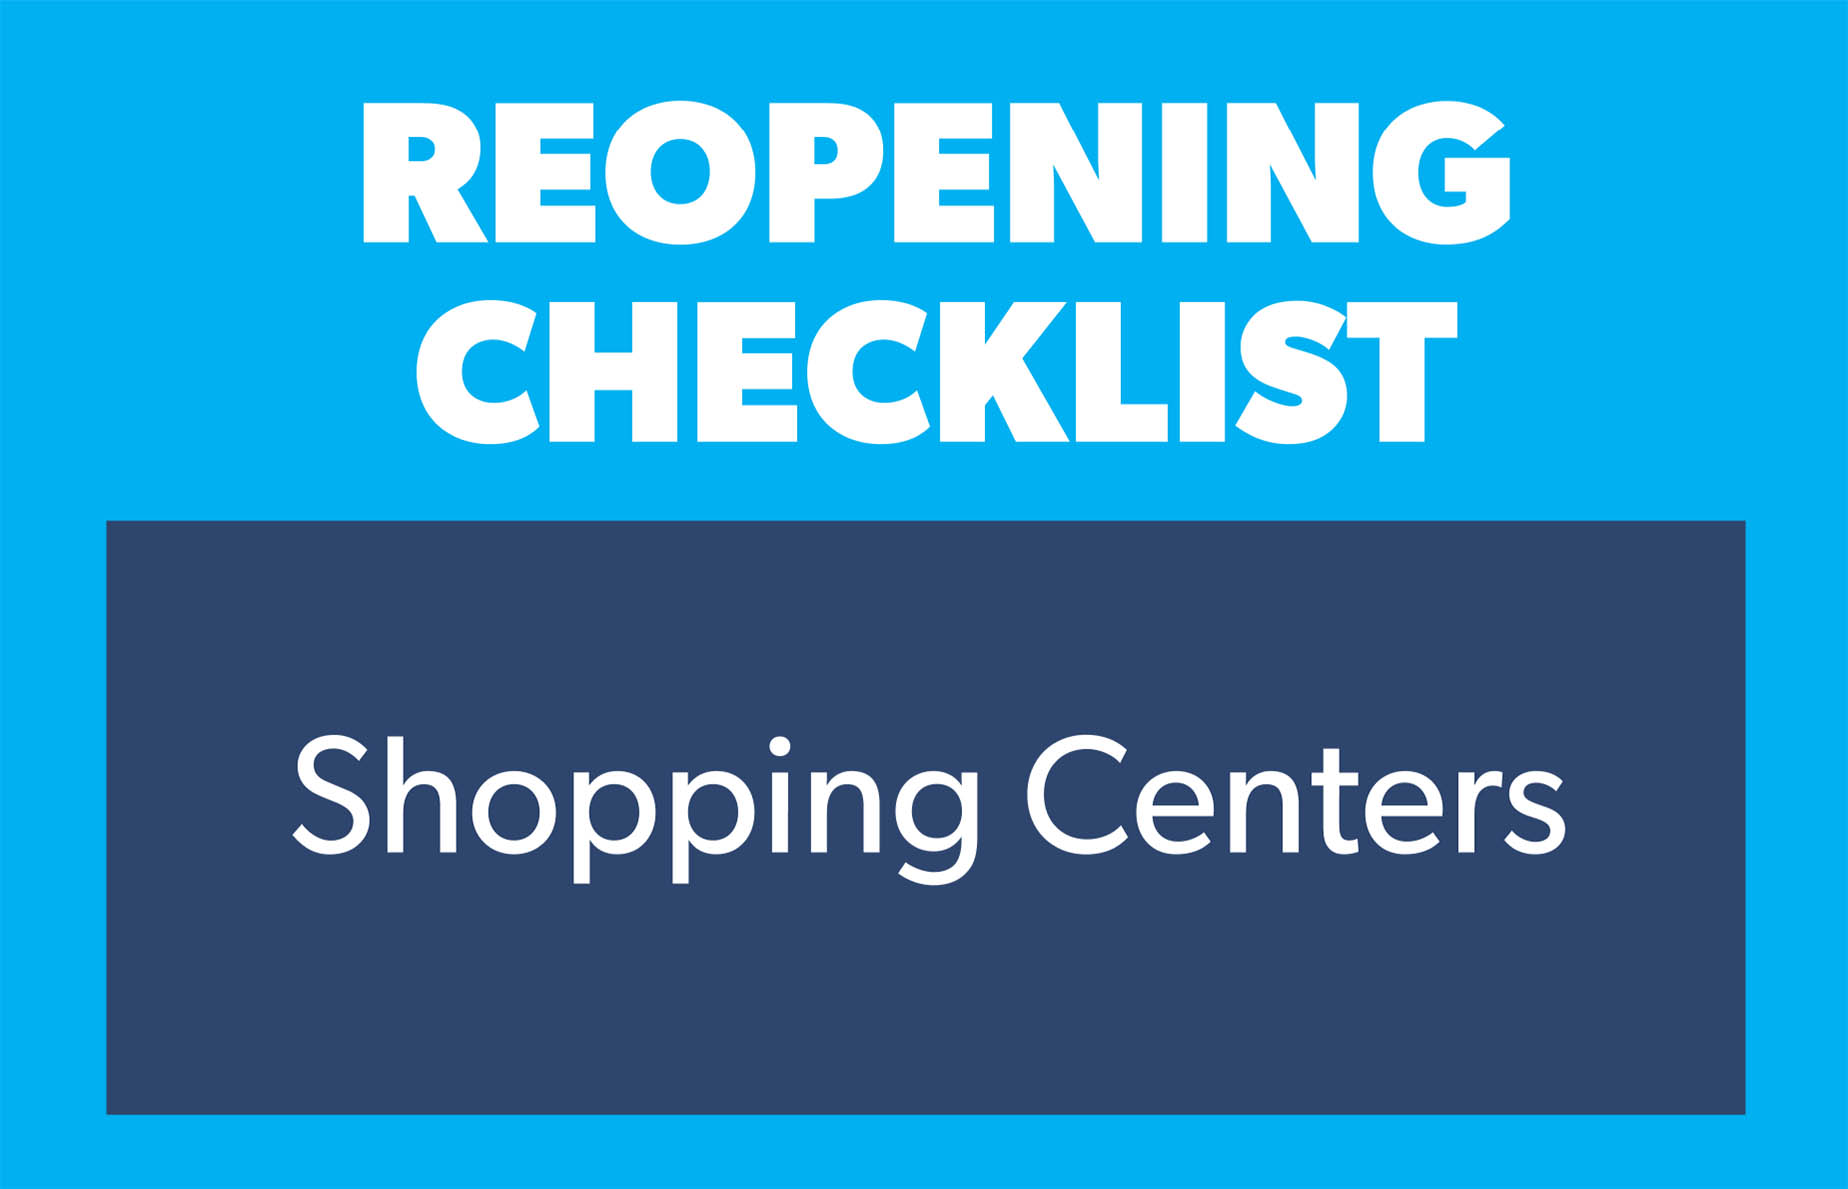 checklist shopping centers